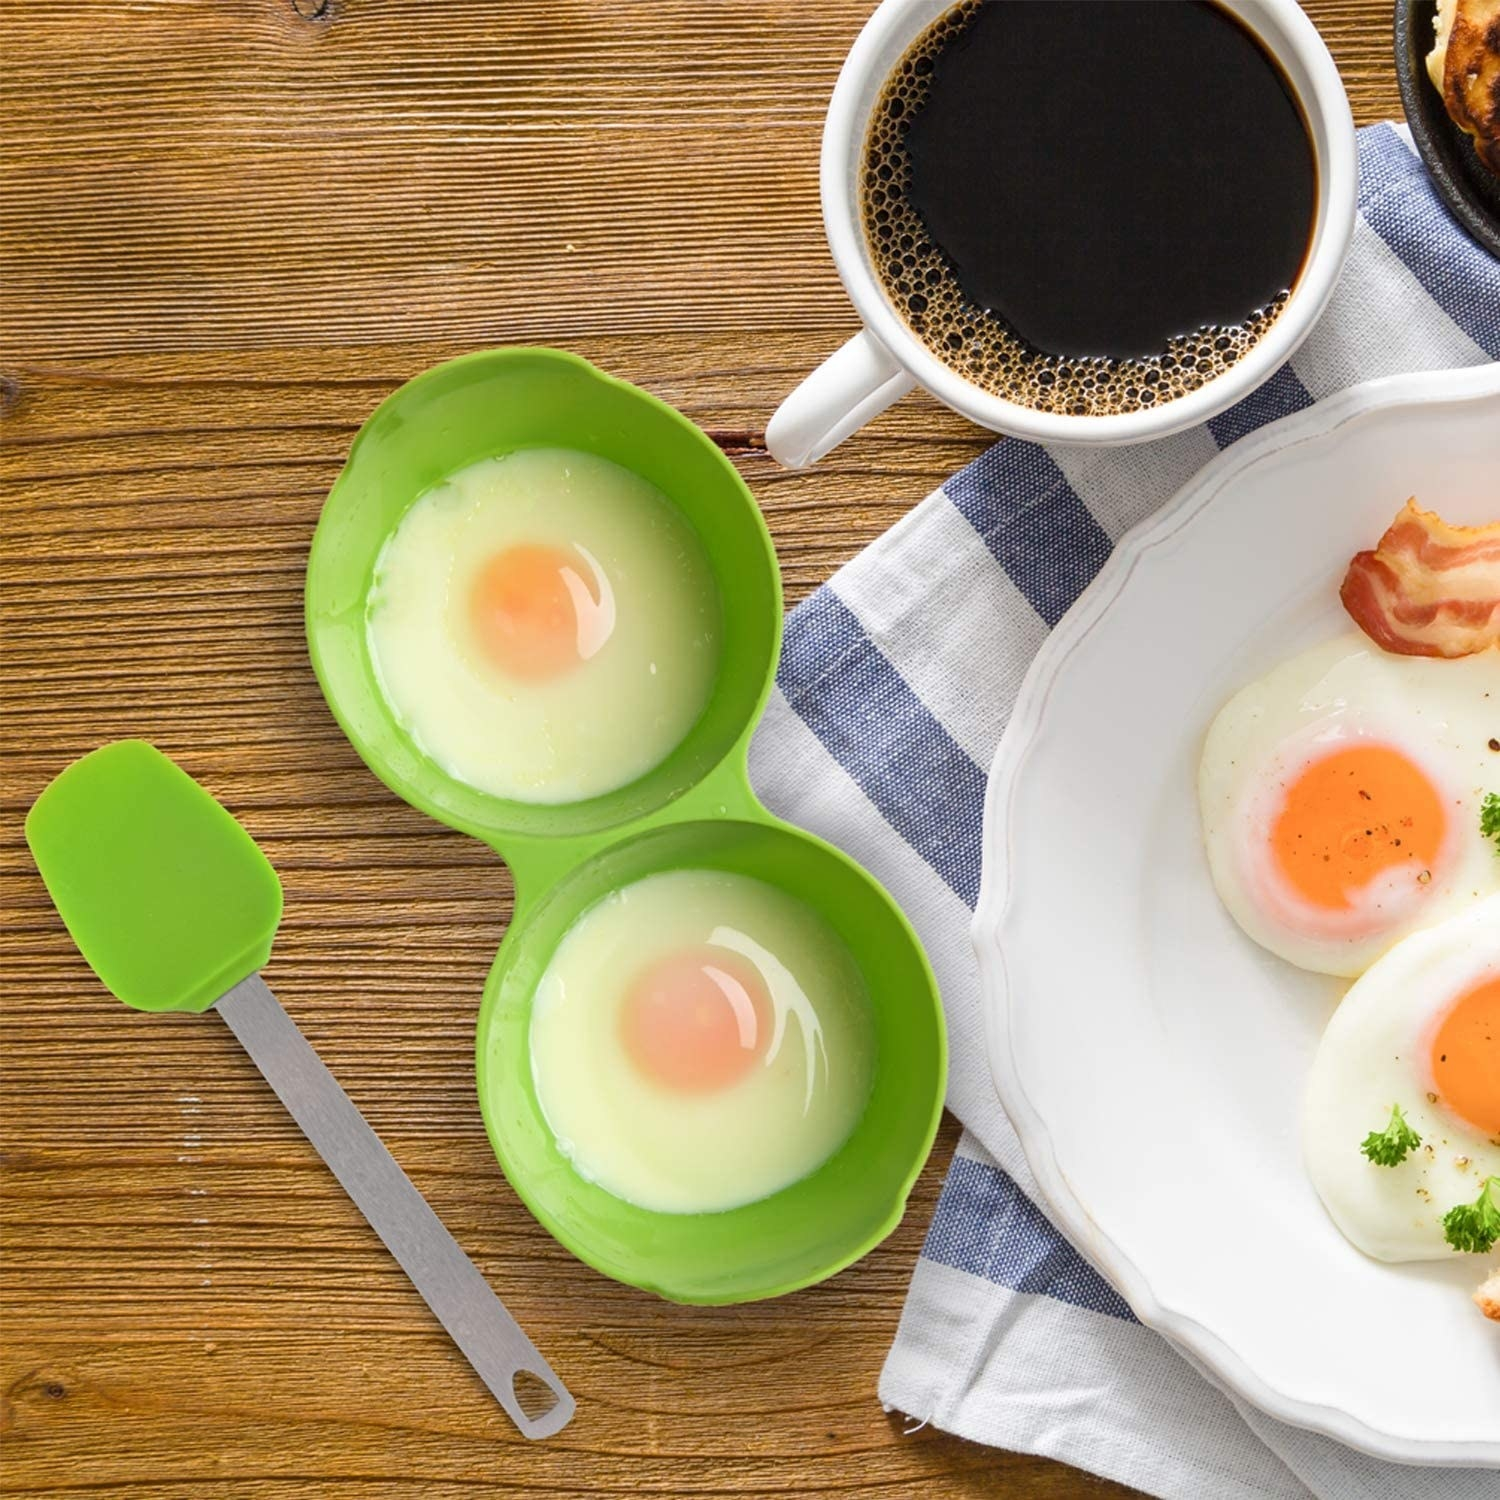 Two poached eggs in the silicone egg poaching cup.